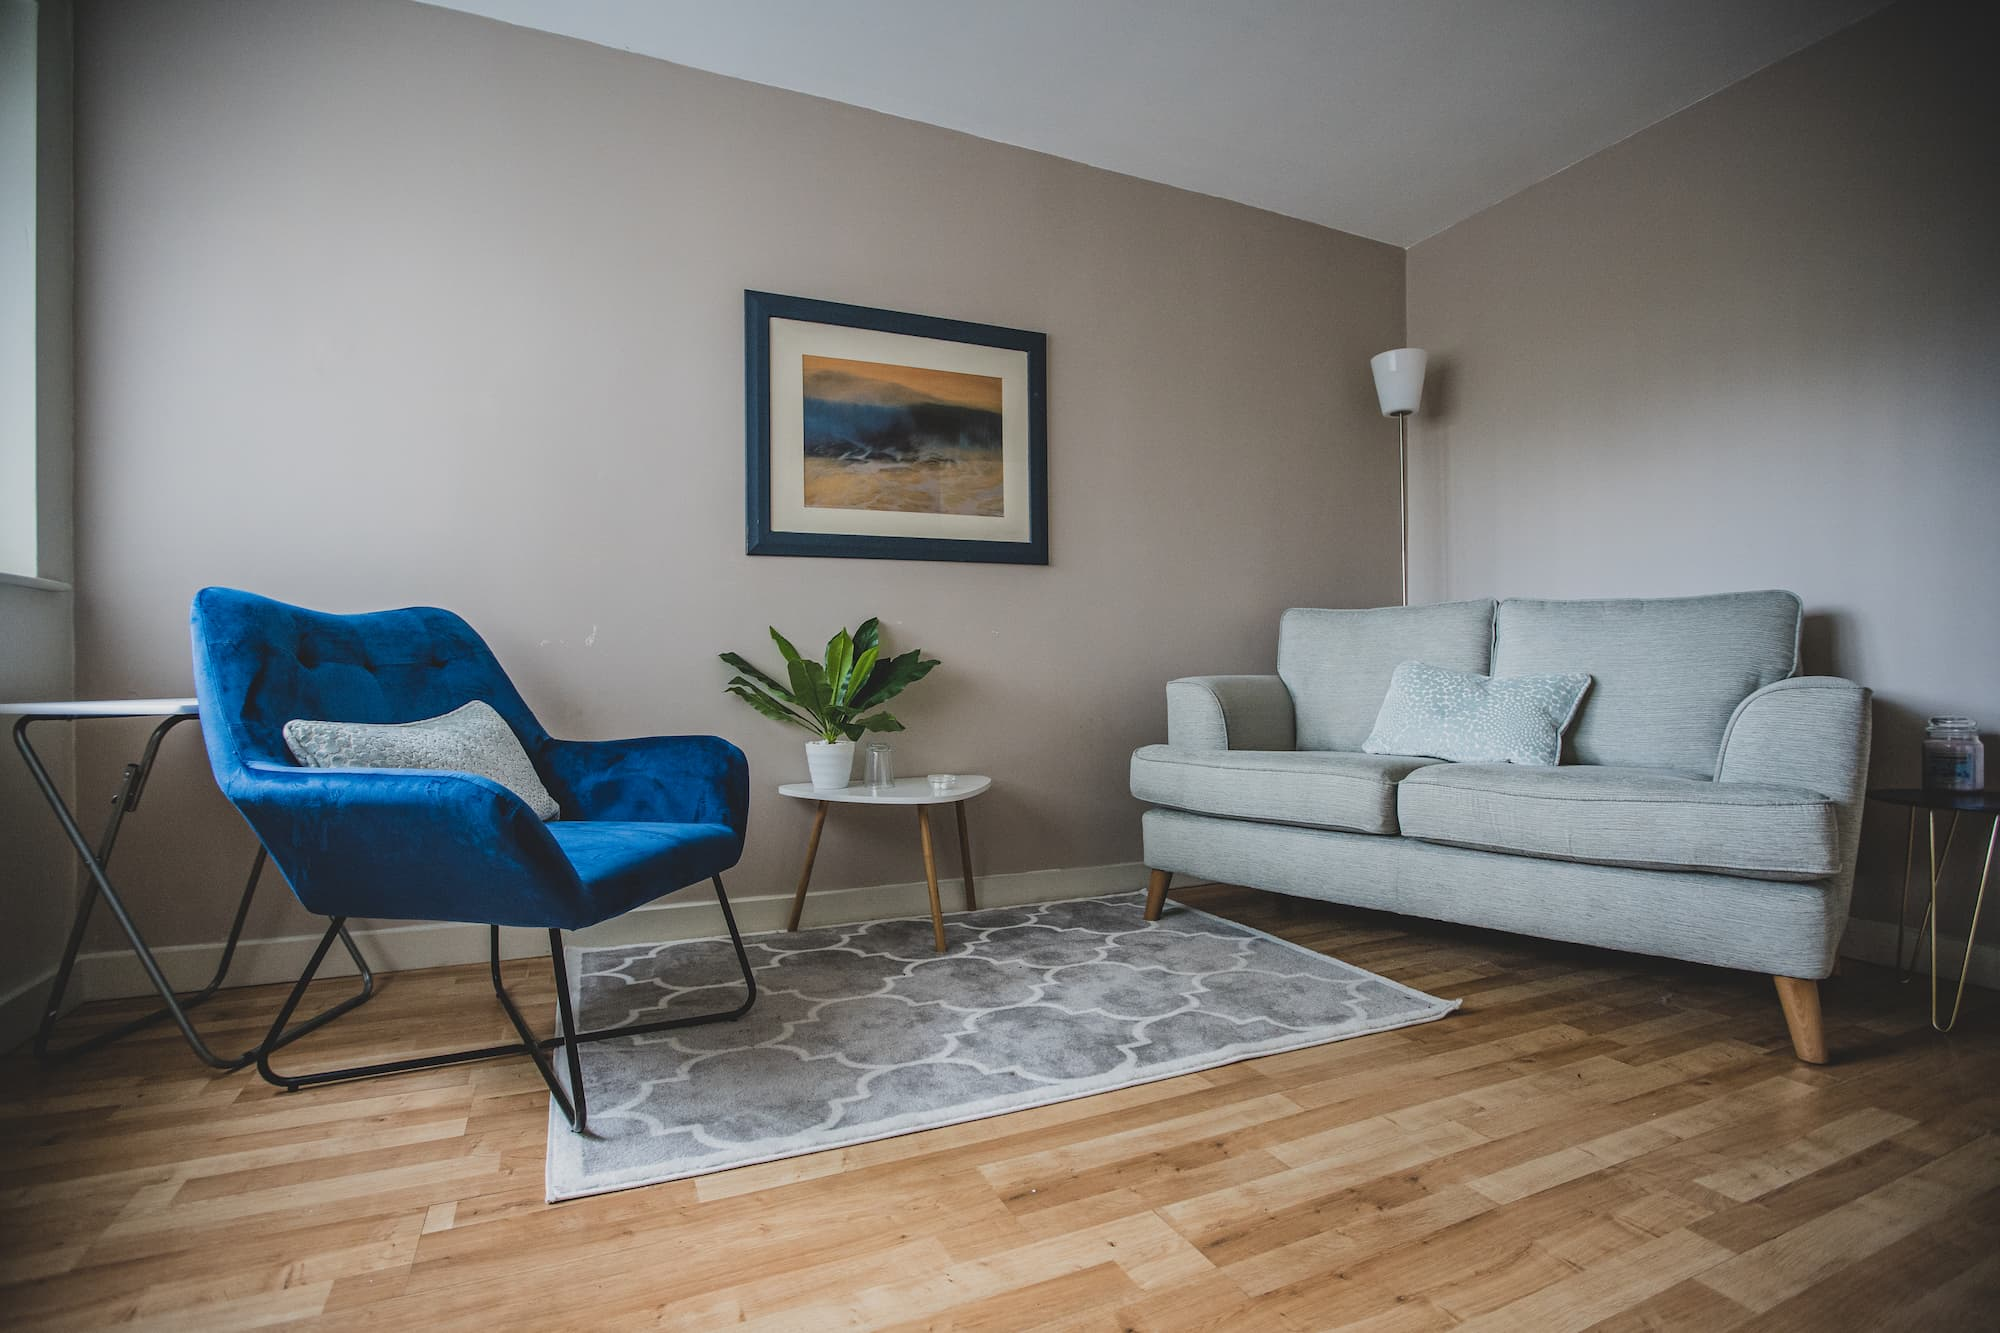 A casual space with a grey sofa, blue armchair and two side tables.